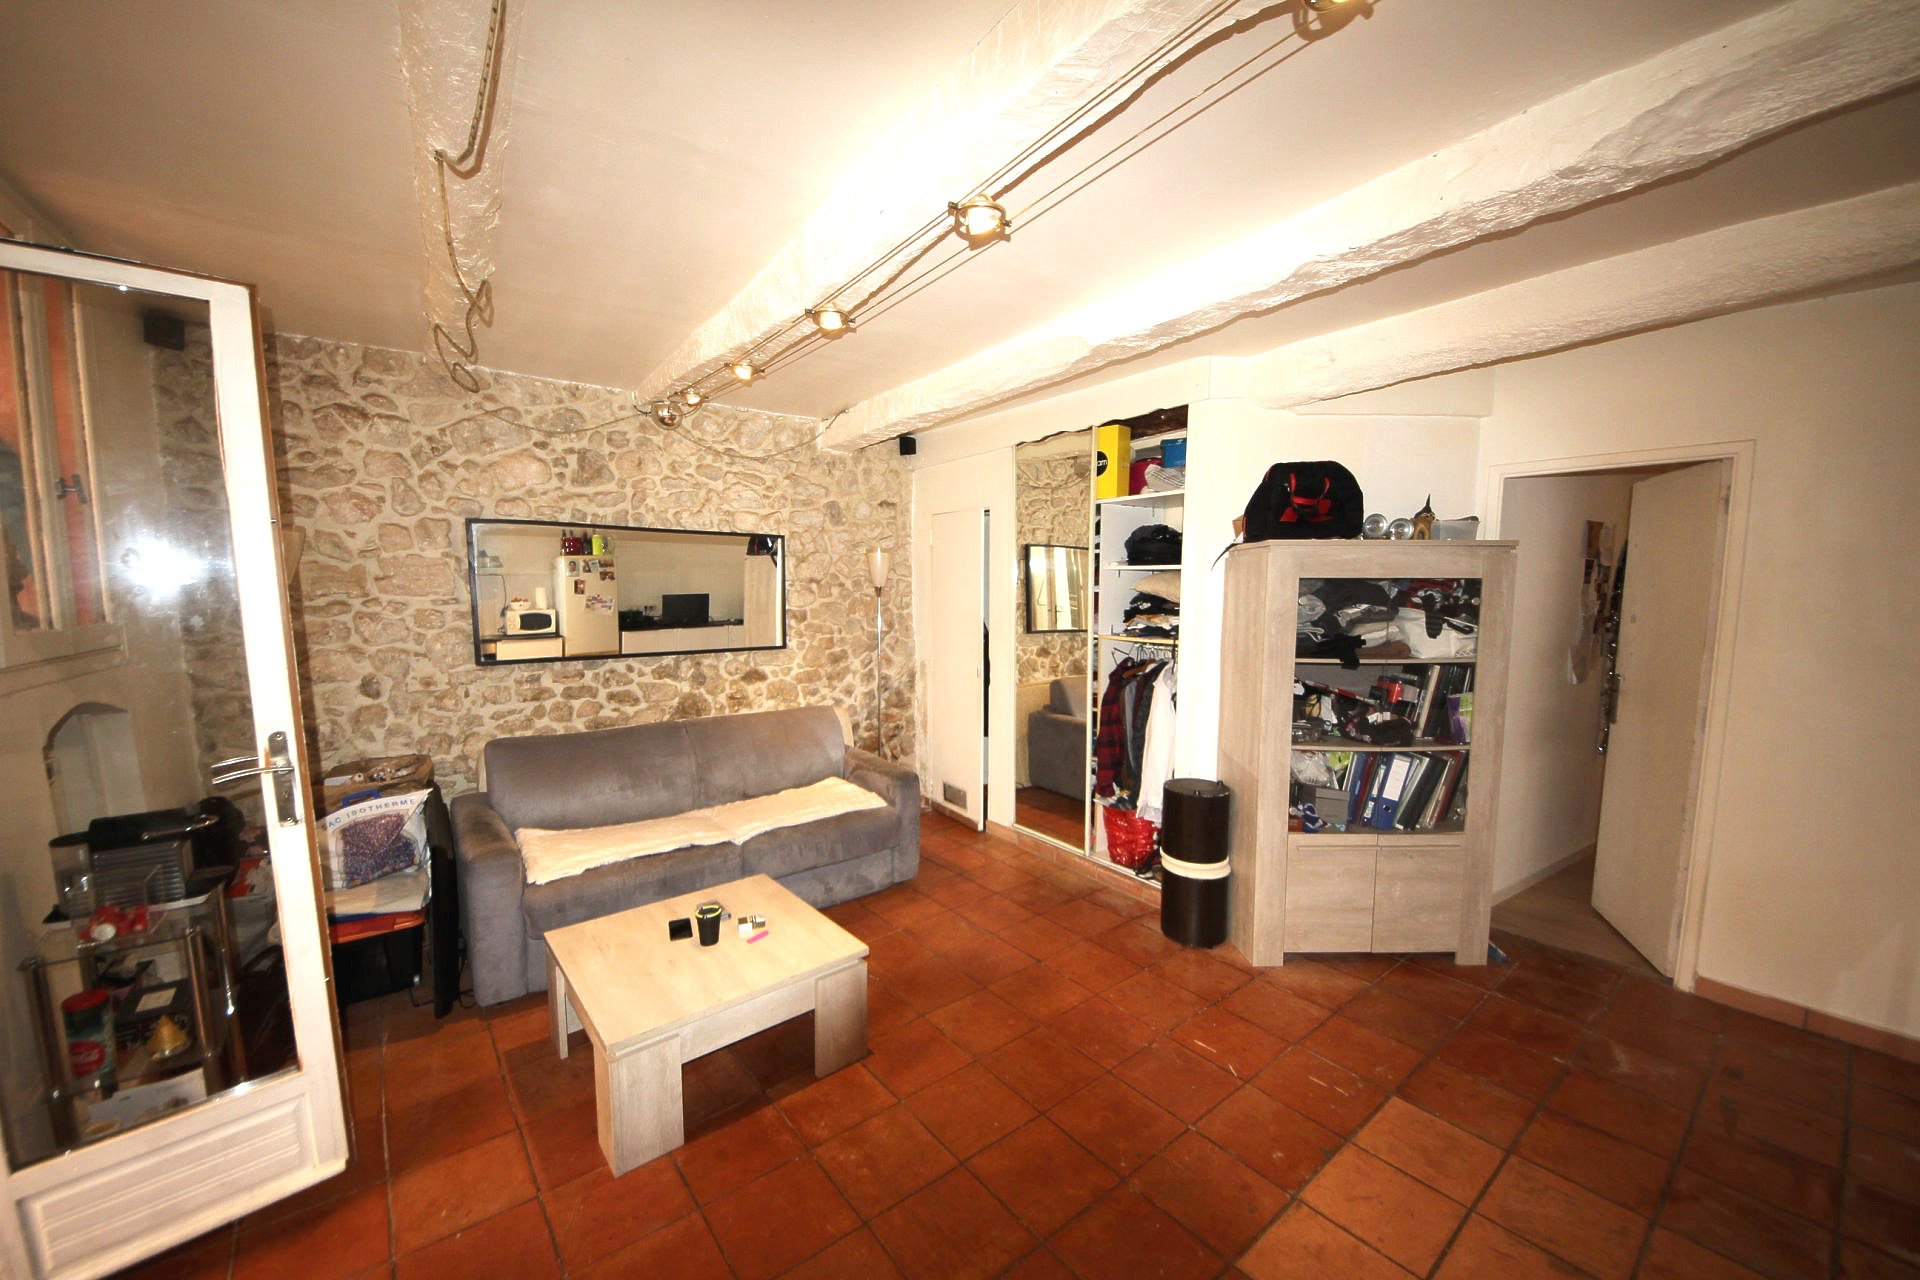 Le Cannes Mairie, Large 35sqm studio with extra bedroom